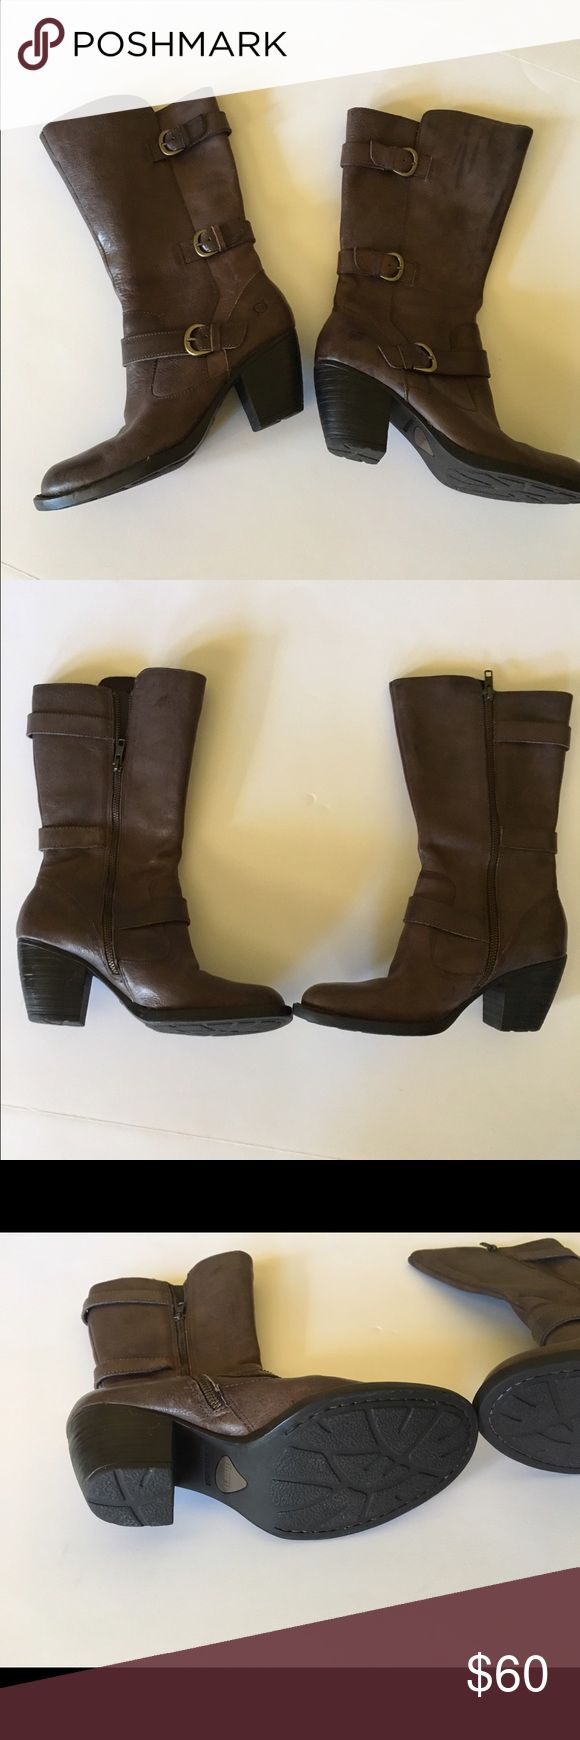 Born boots Born gray boots. Size 7 1/2. I purchased these new at Dillards.  They have never been worn. I should have purchased a larger size as I would like to wear thick socks with them. Selling so I can re-purchase in a larger size. Born Shoes Heeled Boots